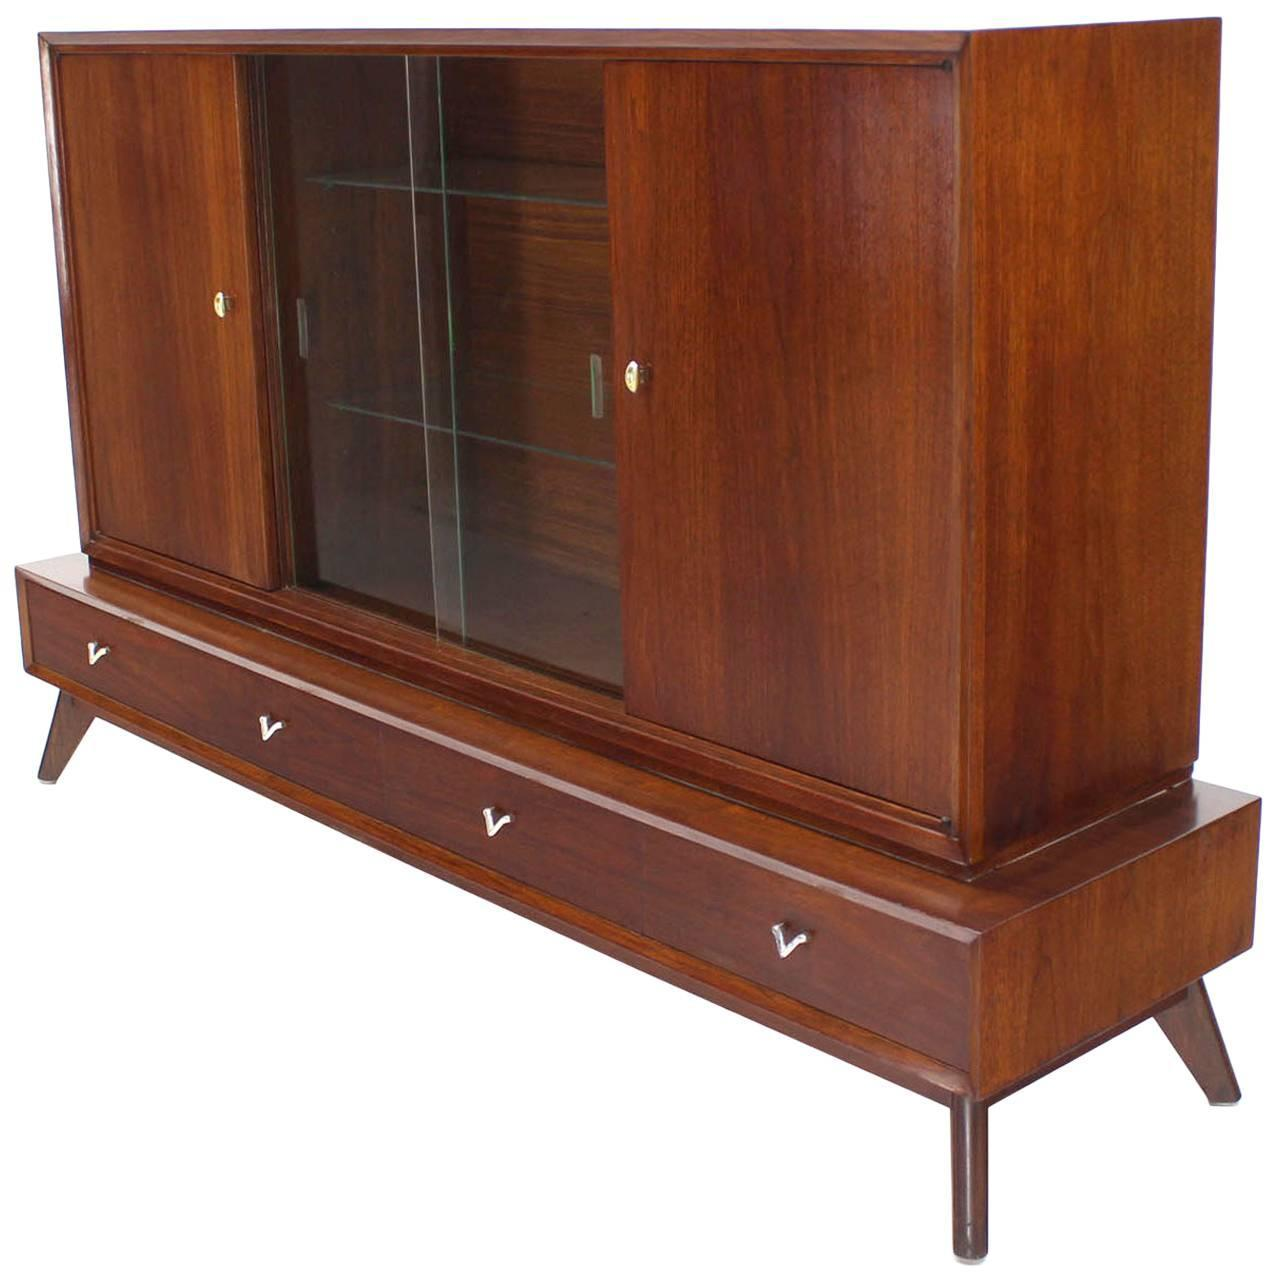 Superieur Two Part Mid Century Modern Walnut Credenza Or Low China Cabinet For Sale  At 1stdibs